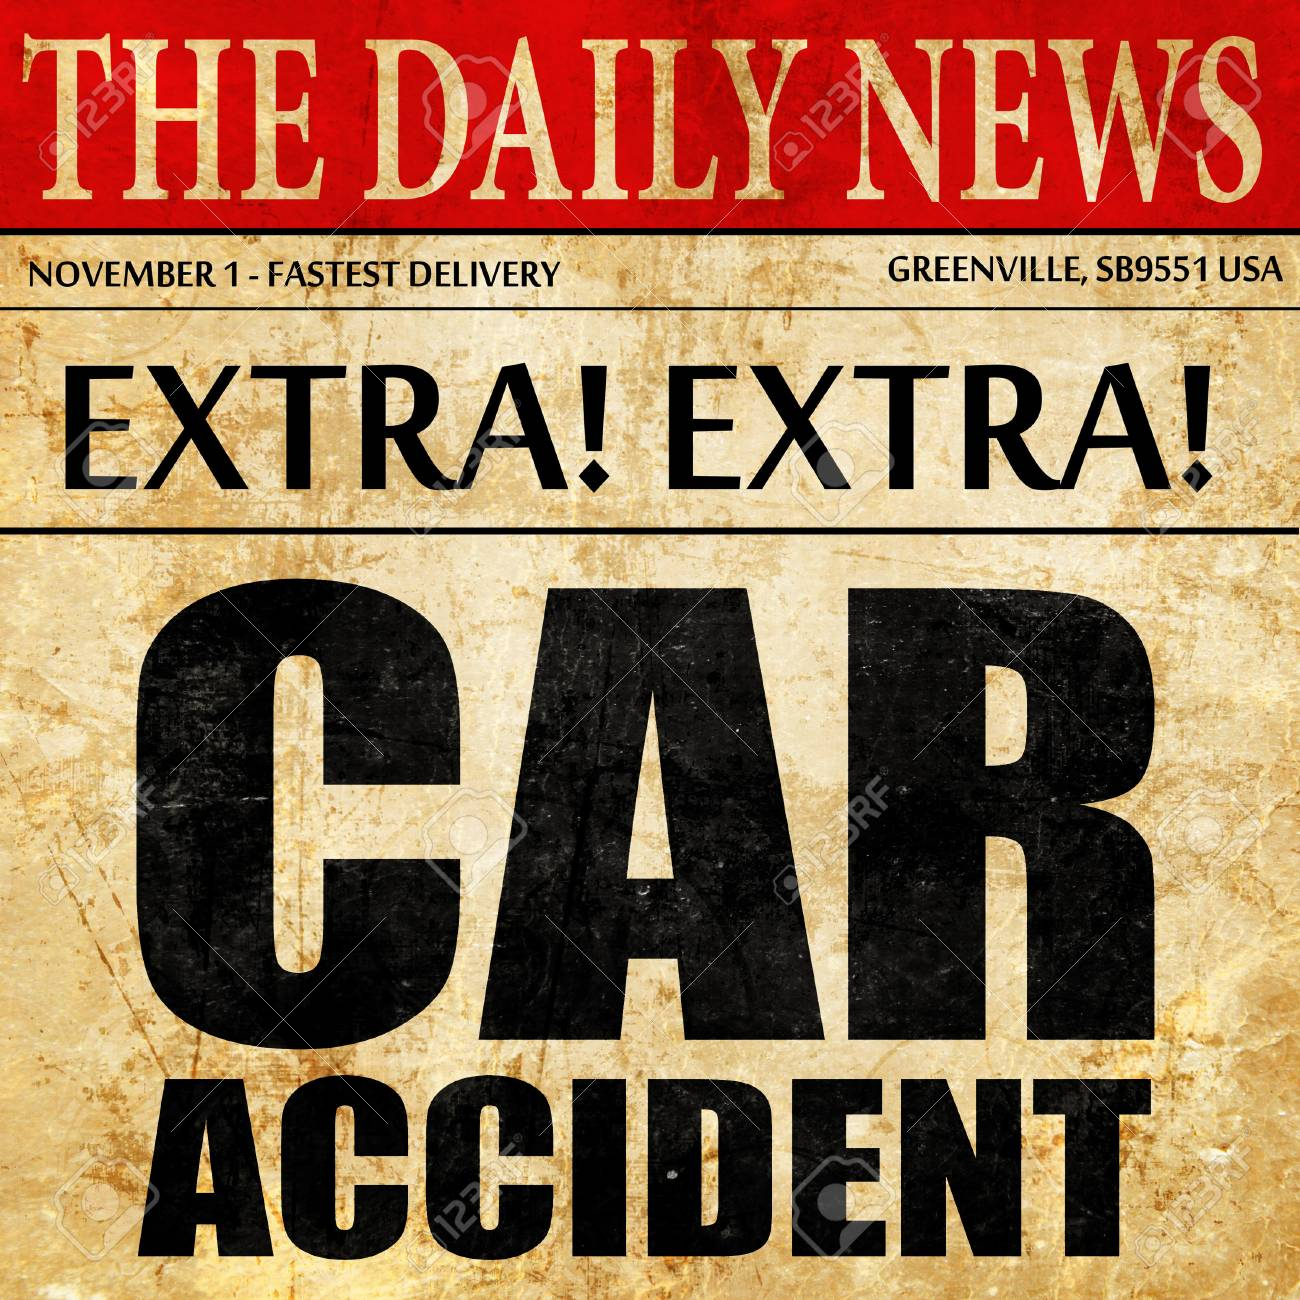 car accident, newspaper article text